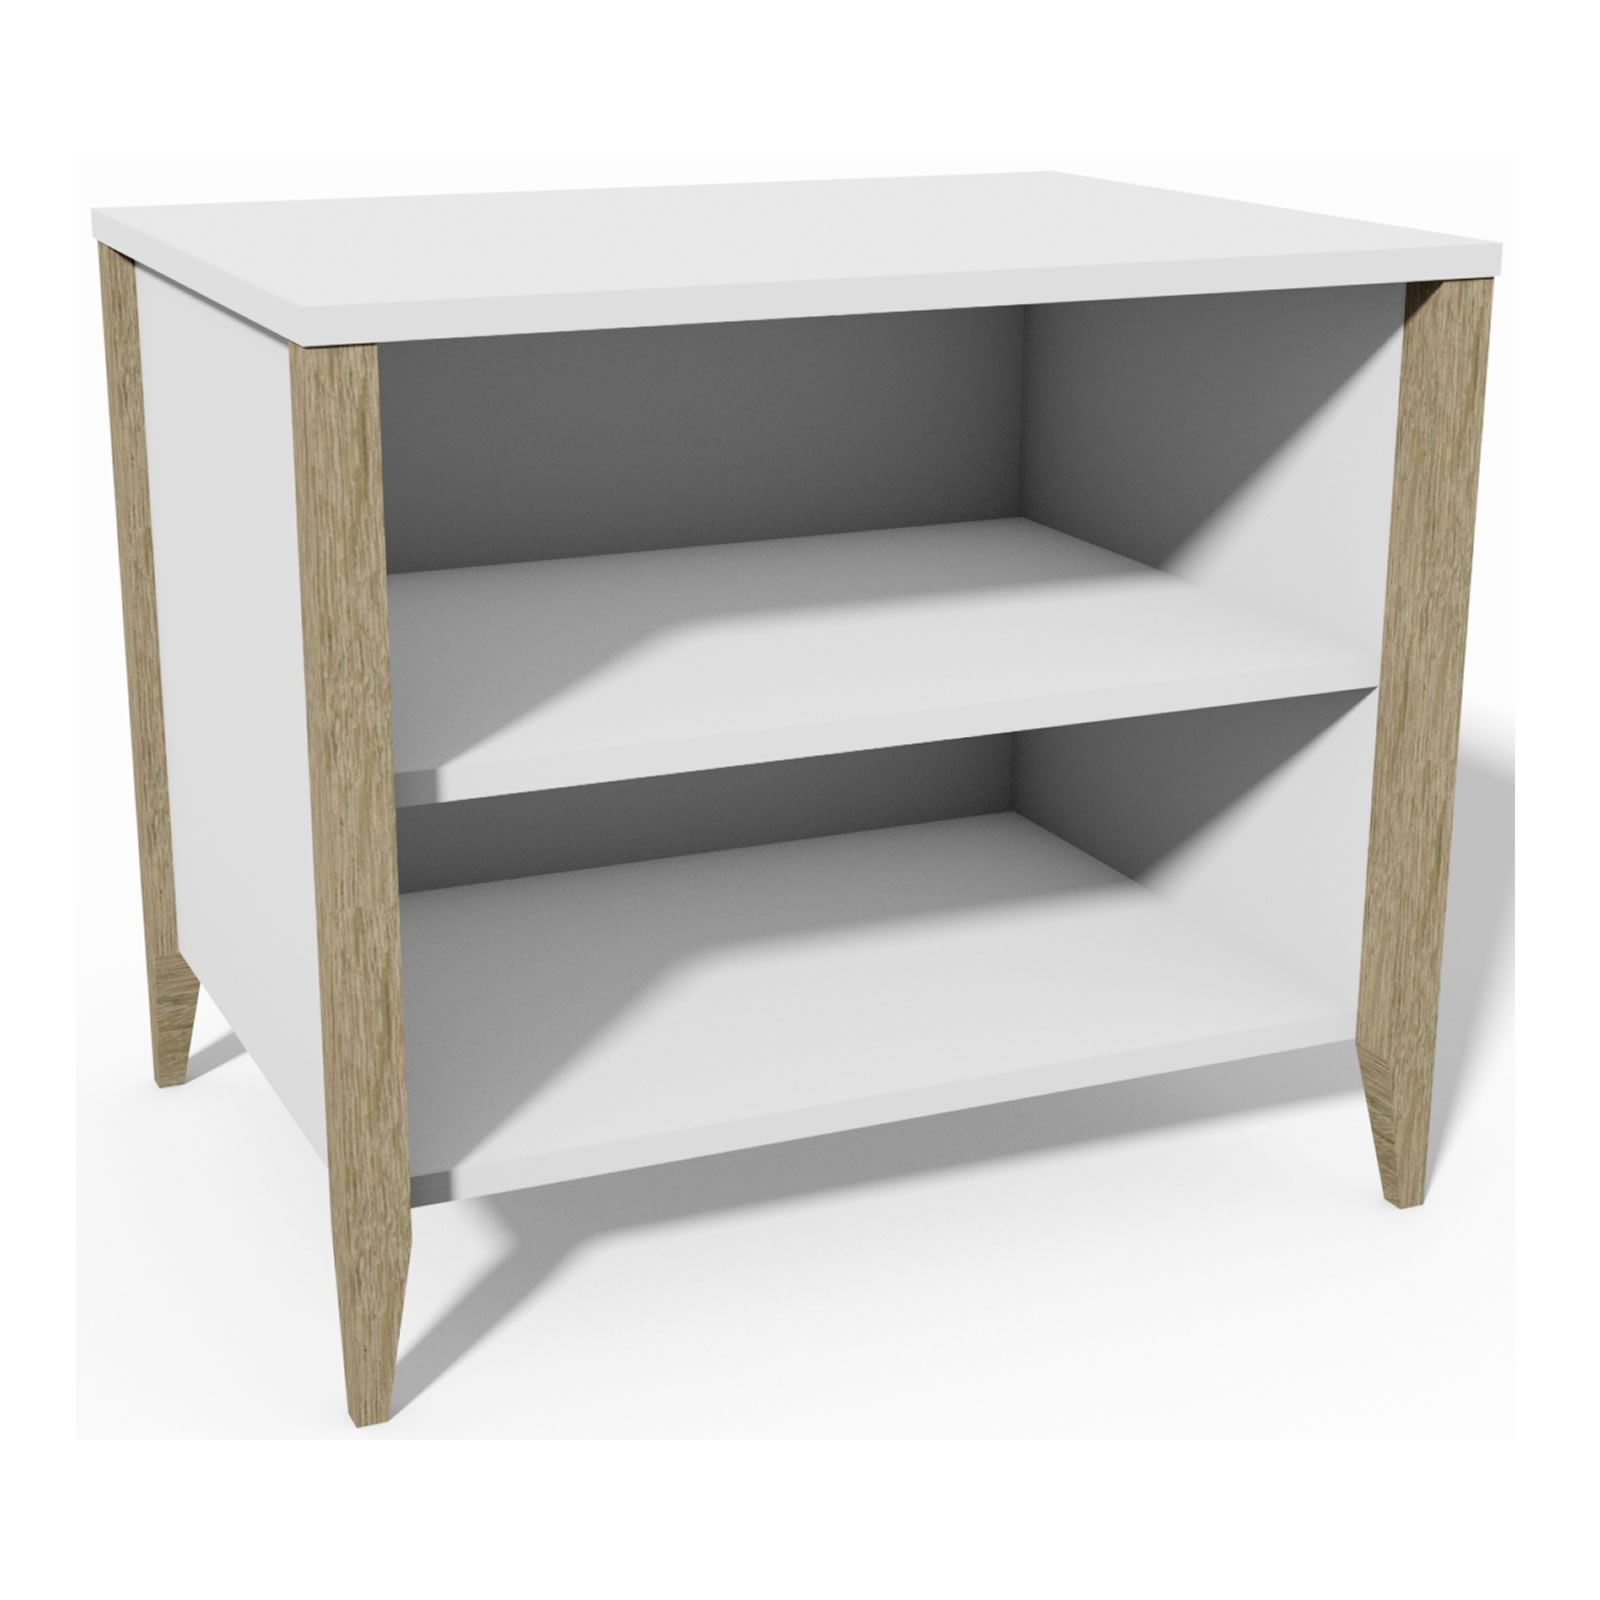 Moda Open Shelf Nightstand